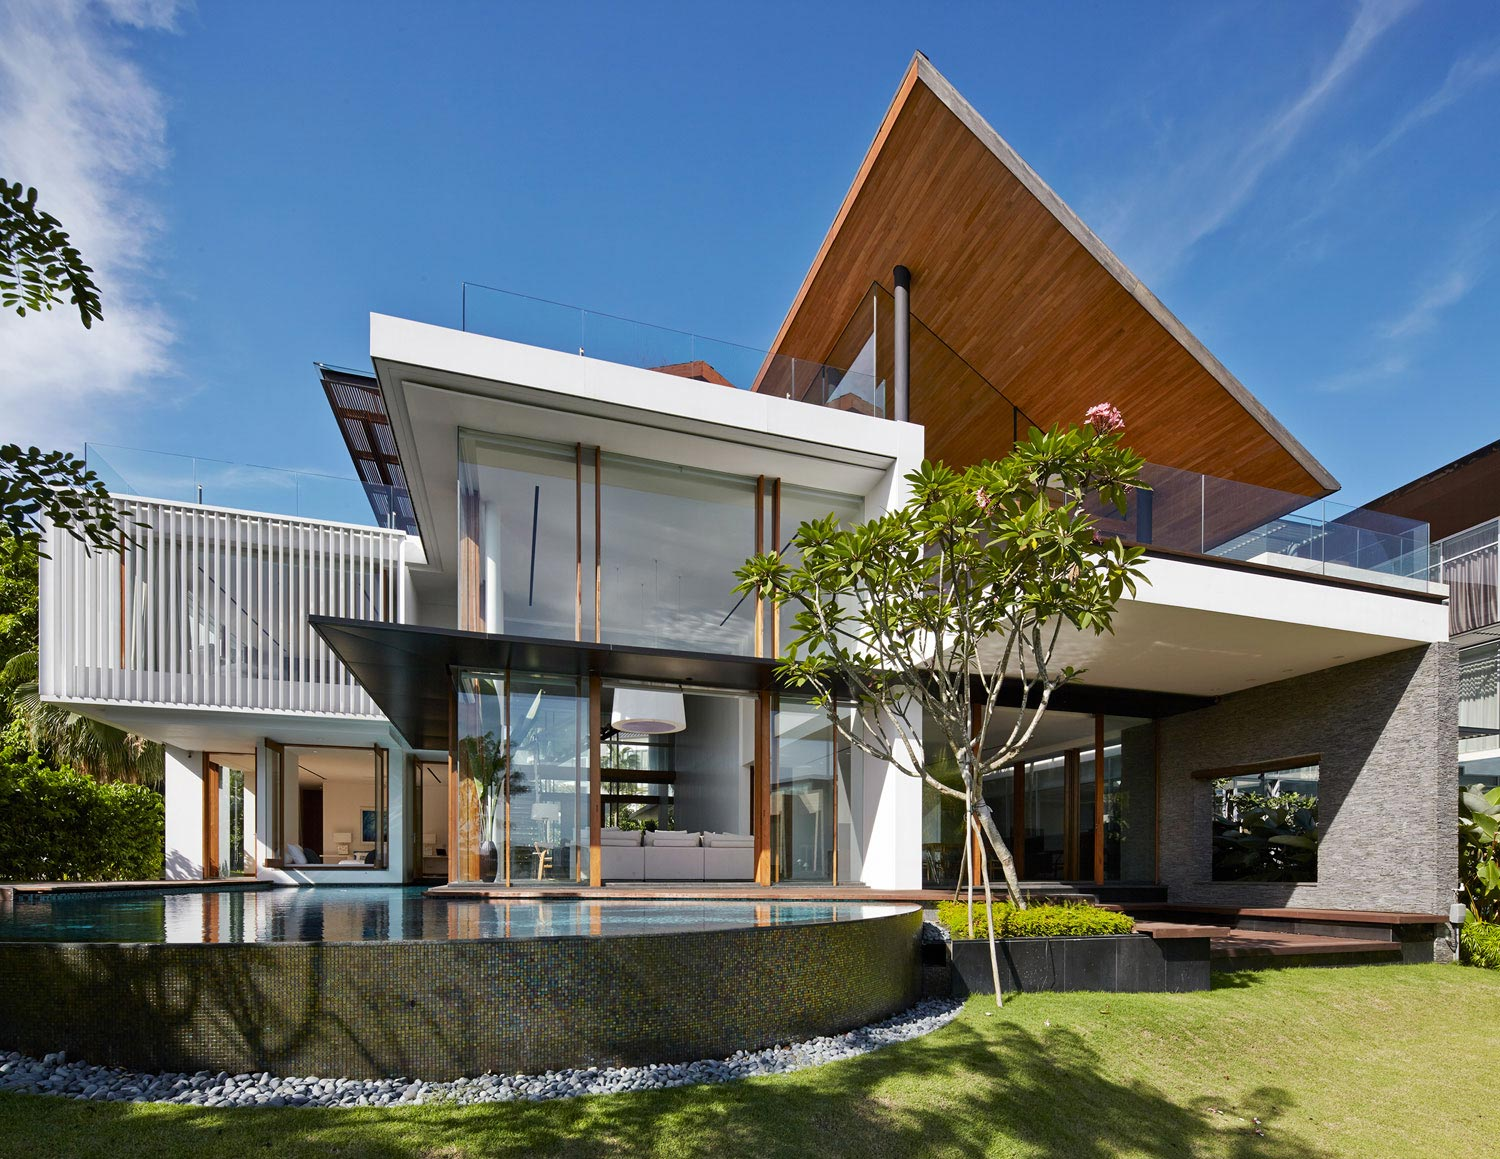 Sophisticated No 2 House In Singapore By Robert Greg